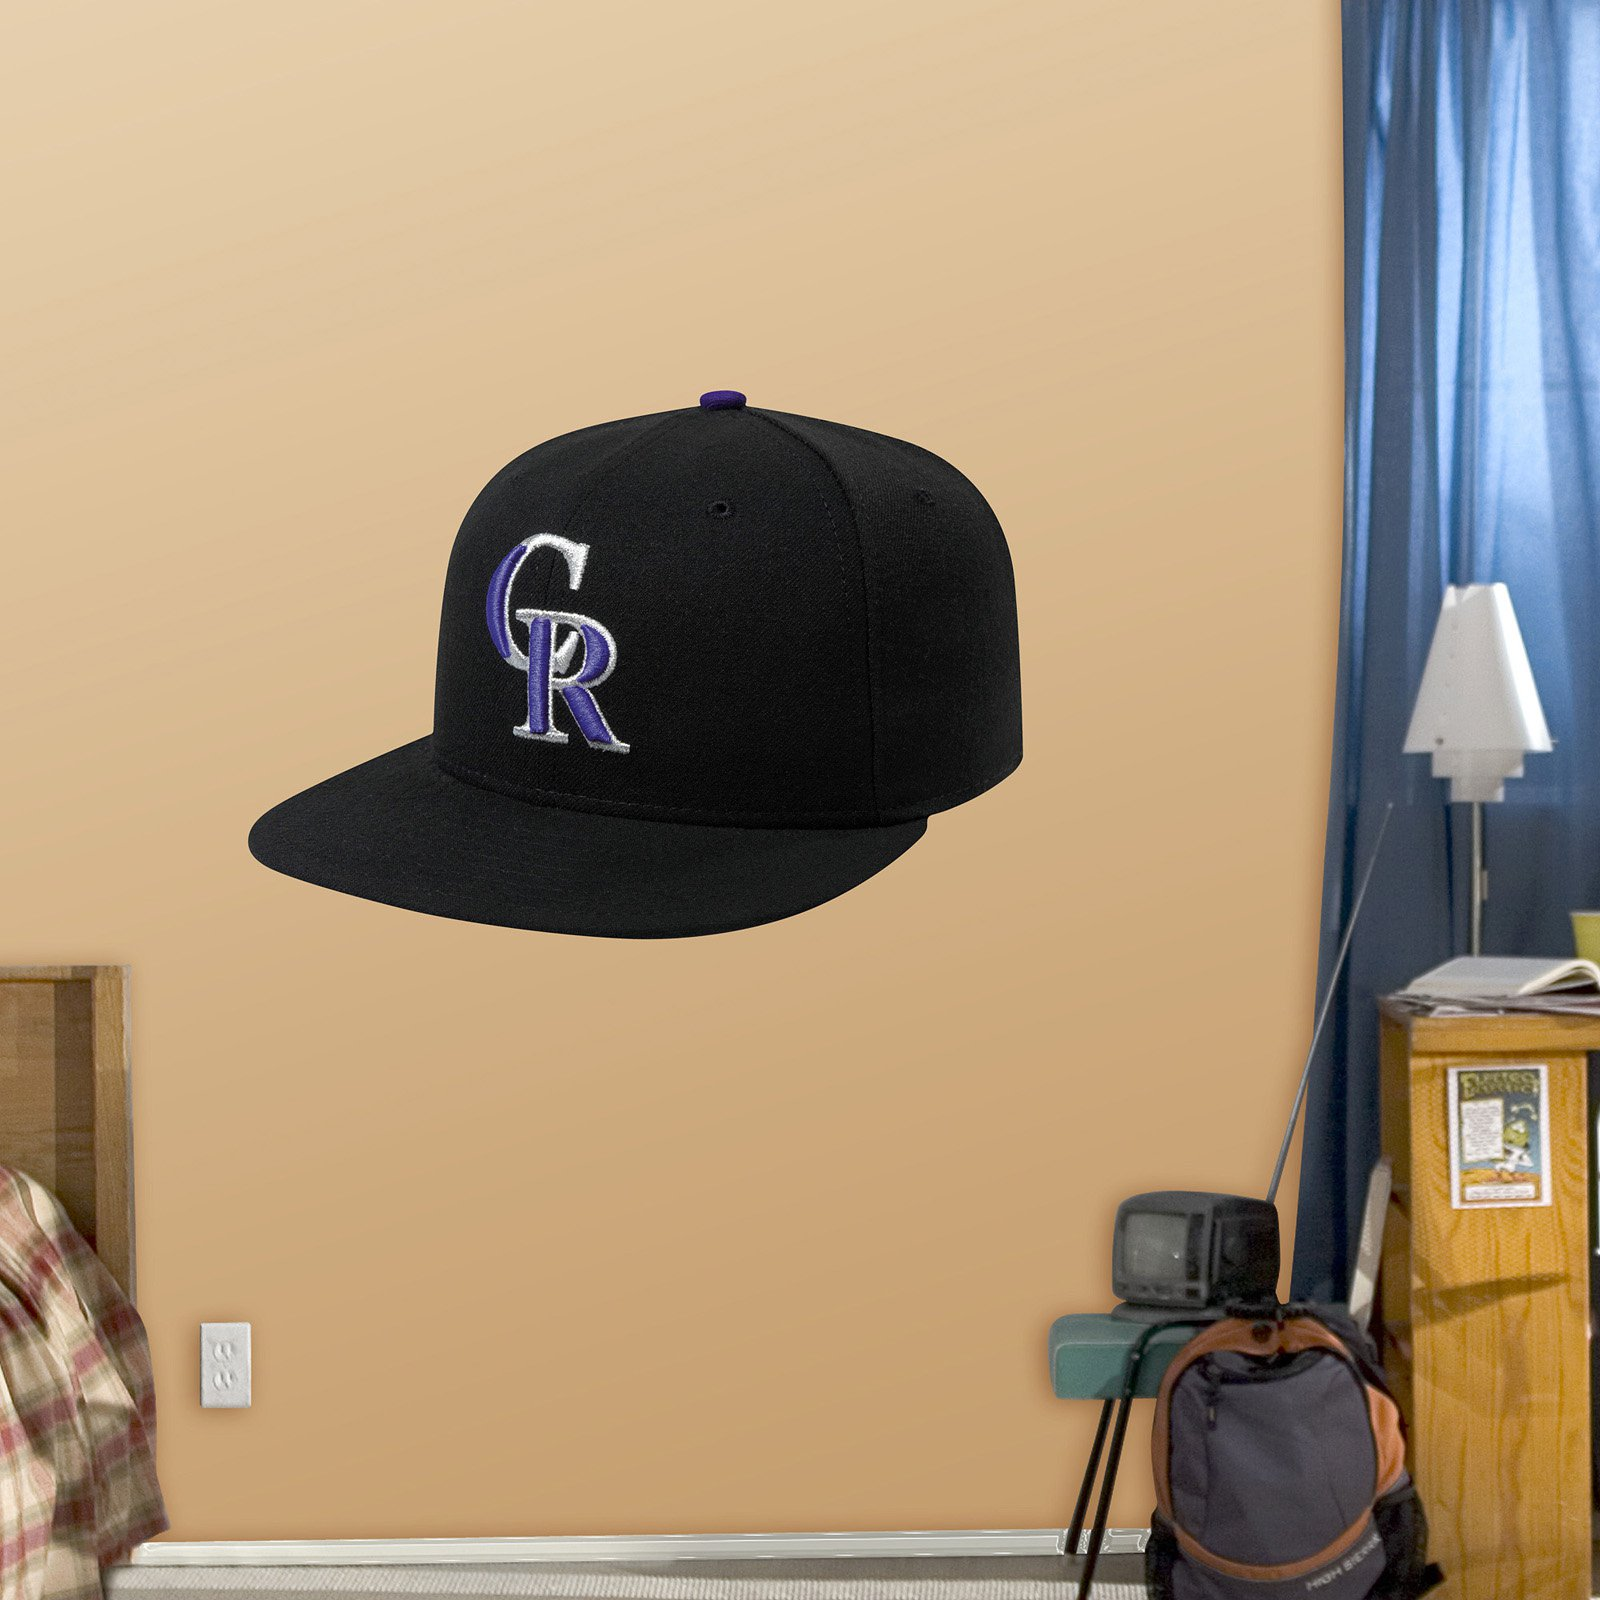 Fathead MLB Team Cap Wall Decal